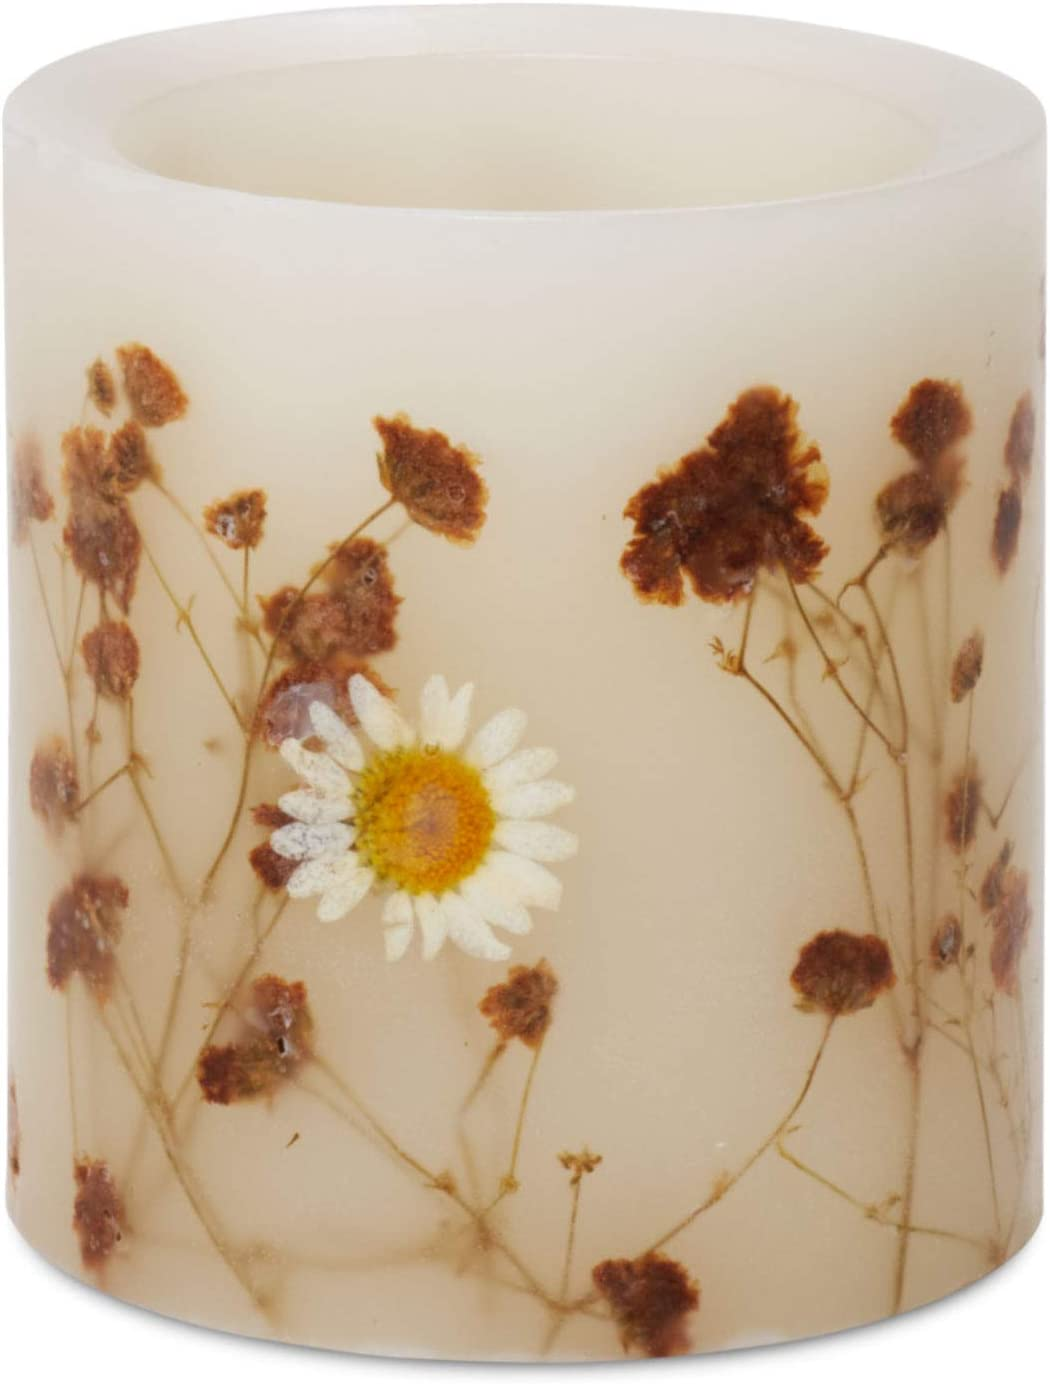 Matchless Flameless Pillar Candle Small, LED, Embedded White Flowers, White Waters Scented, (Ivory, 3.5 Inches x 4 Inches Tall), Push Button, Real Wax, 5 Hour Timer, Battery Powered